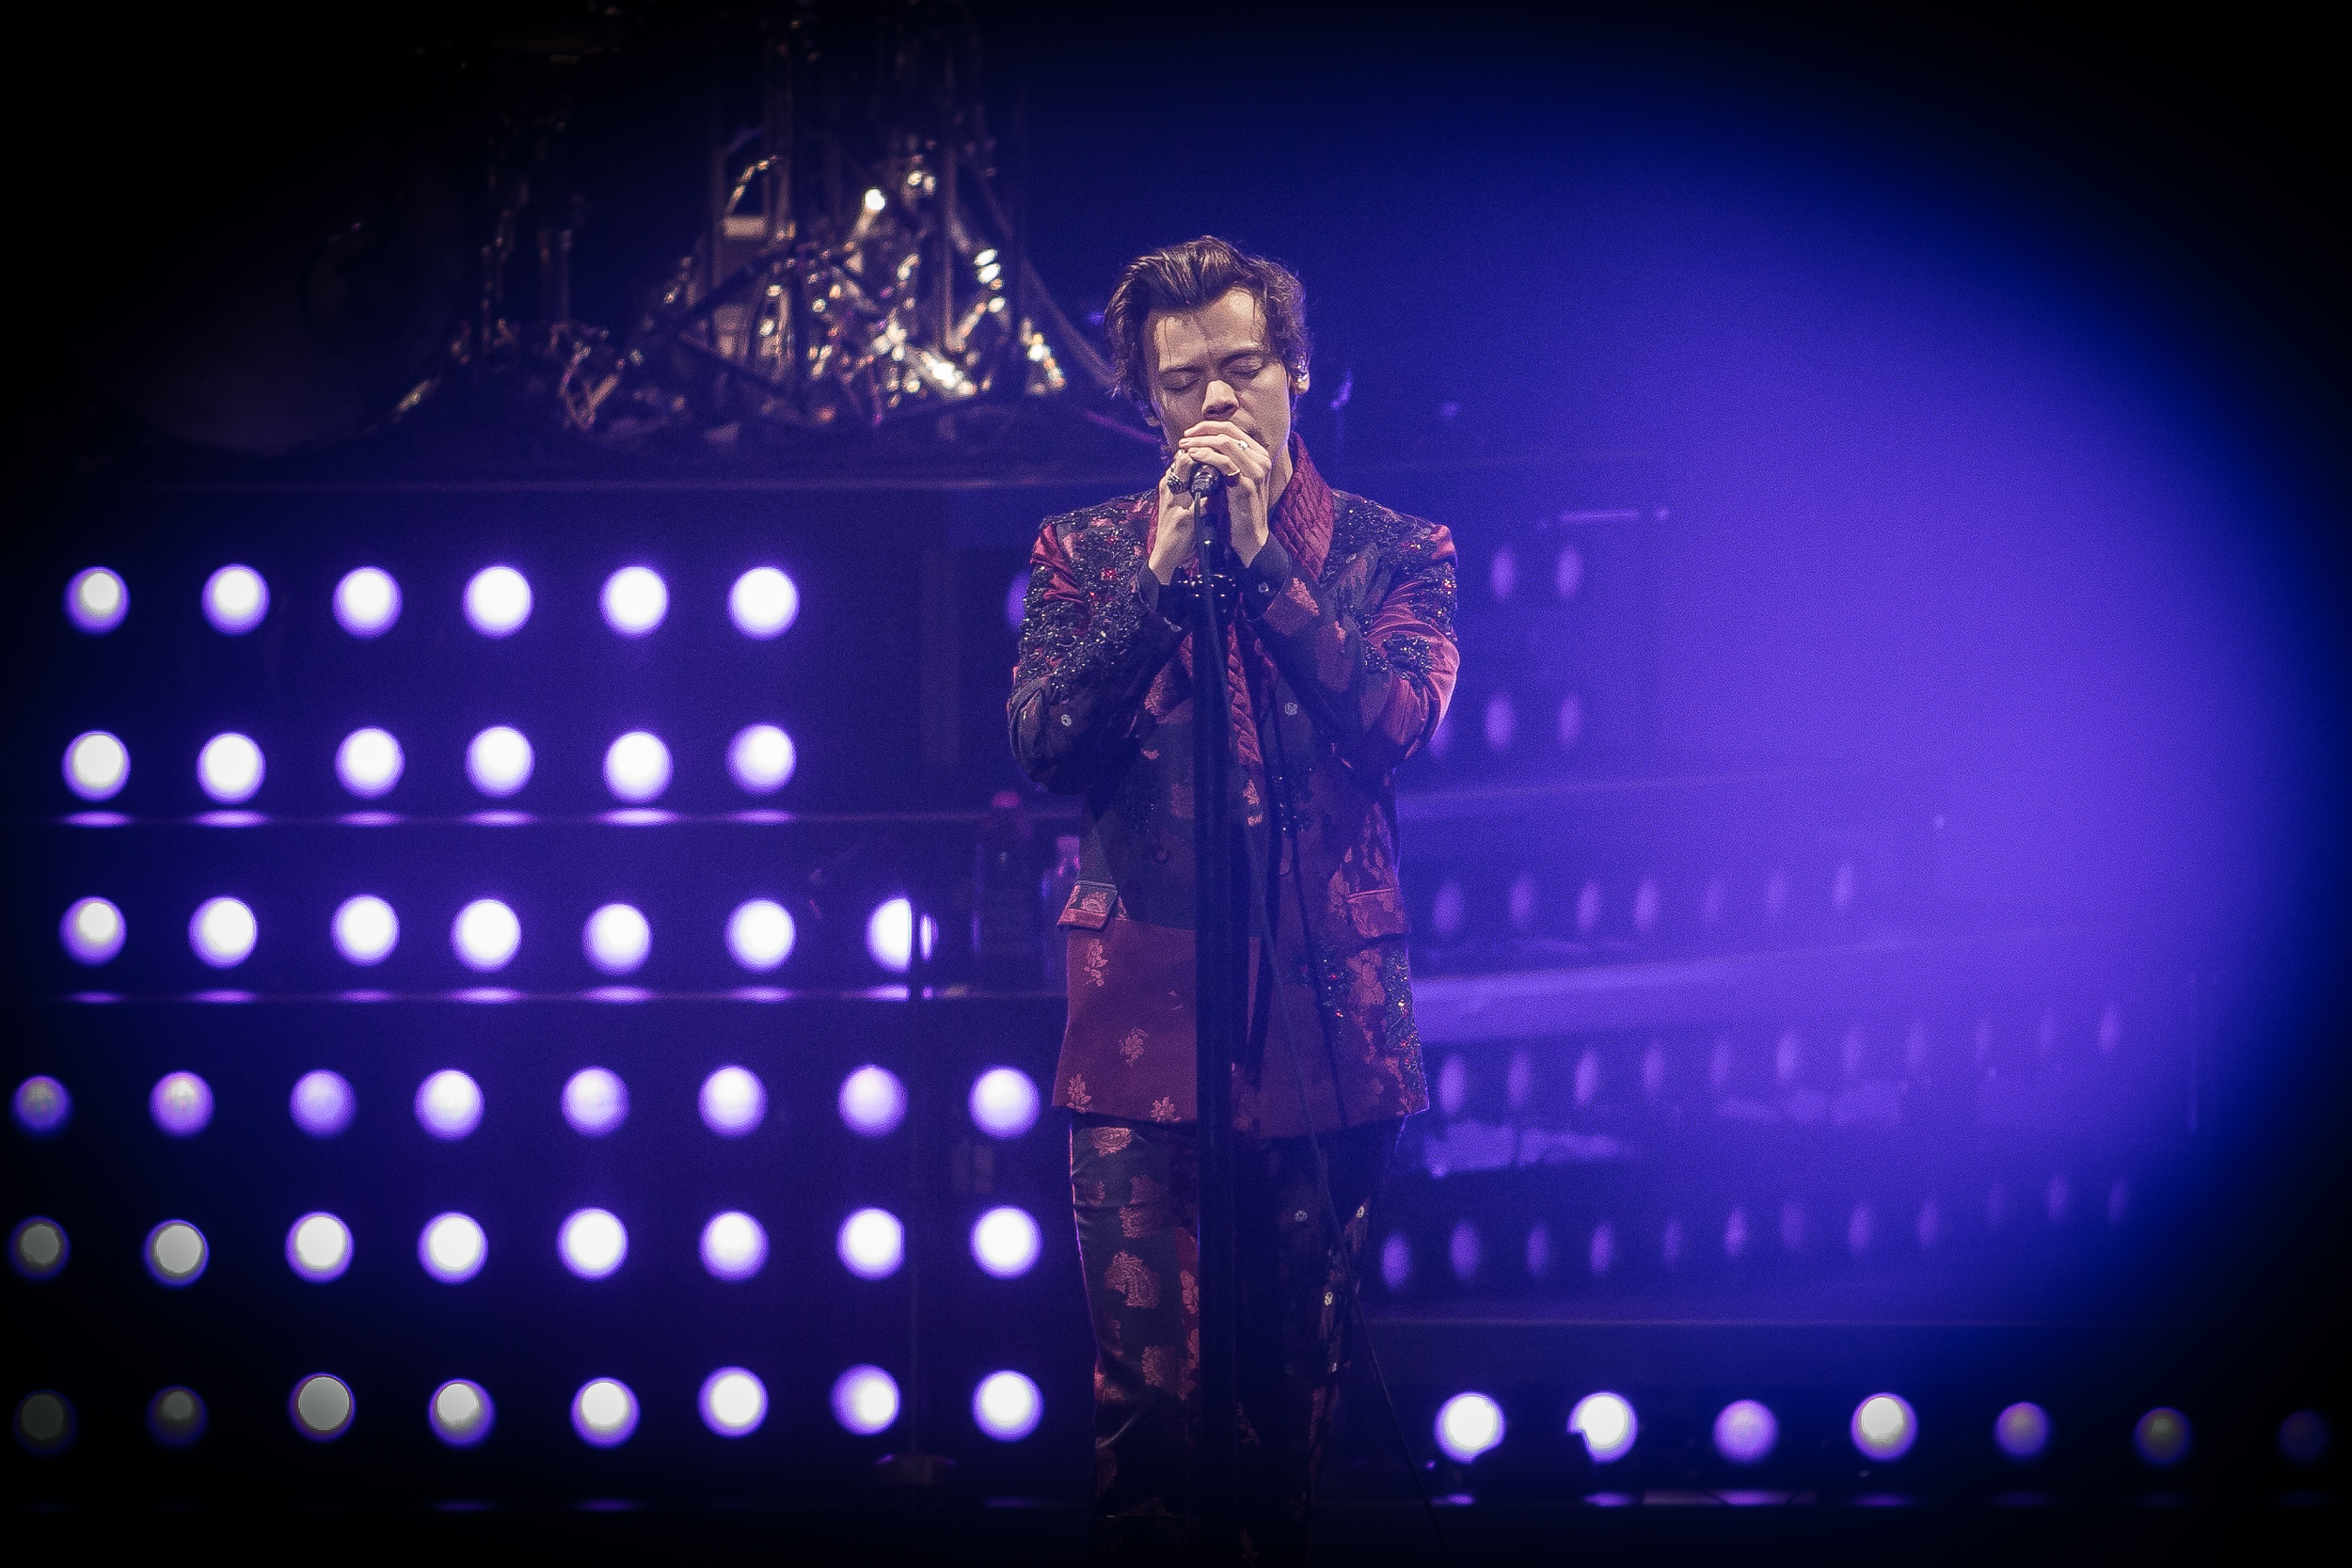 Harry Styles live at Oslo Spektrum